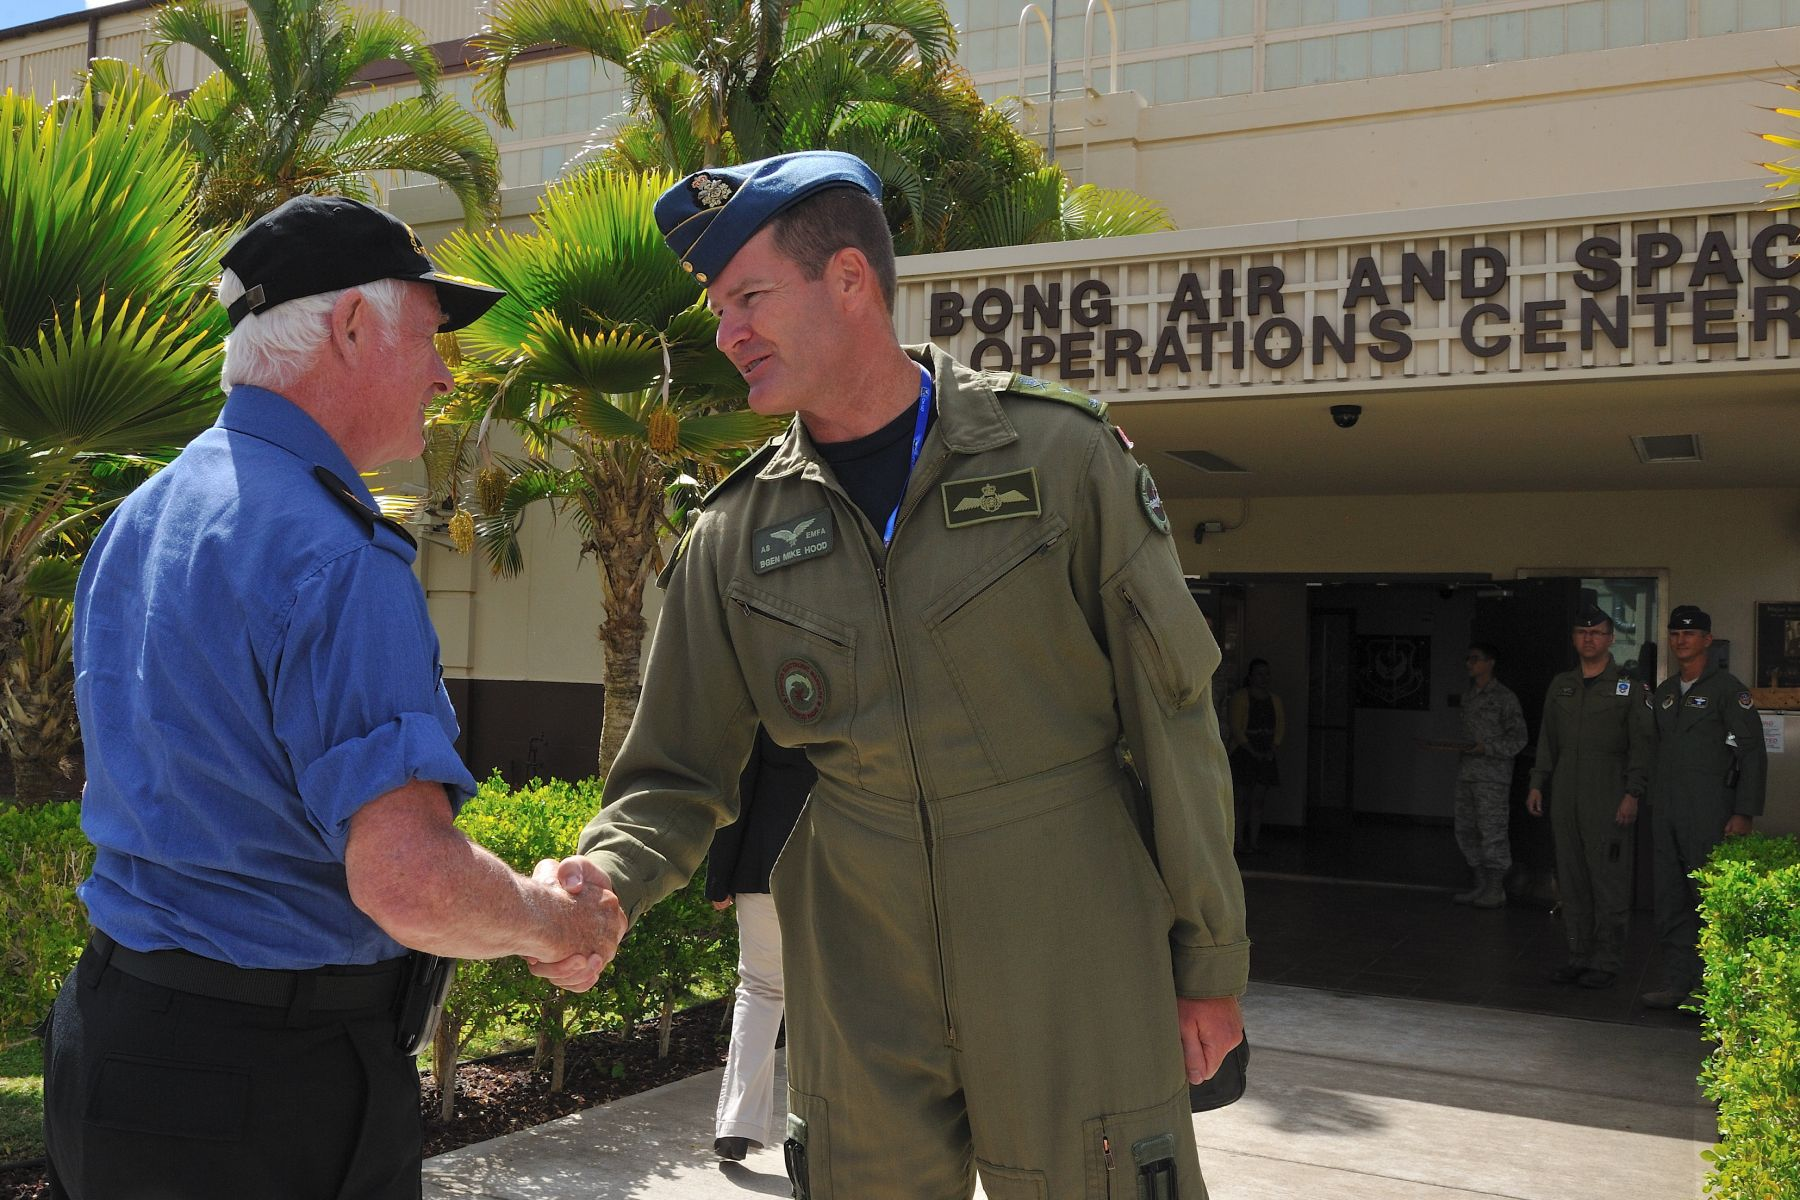 On the morning of July 20, His Excellency, joined by Brigadier-General Michael Hood, Combined Forces Air Component Commander, toured the Combined Air Operations Centre and deployed Air Force units.